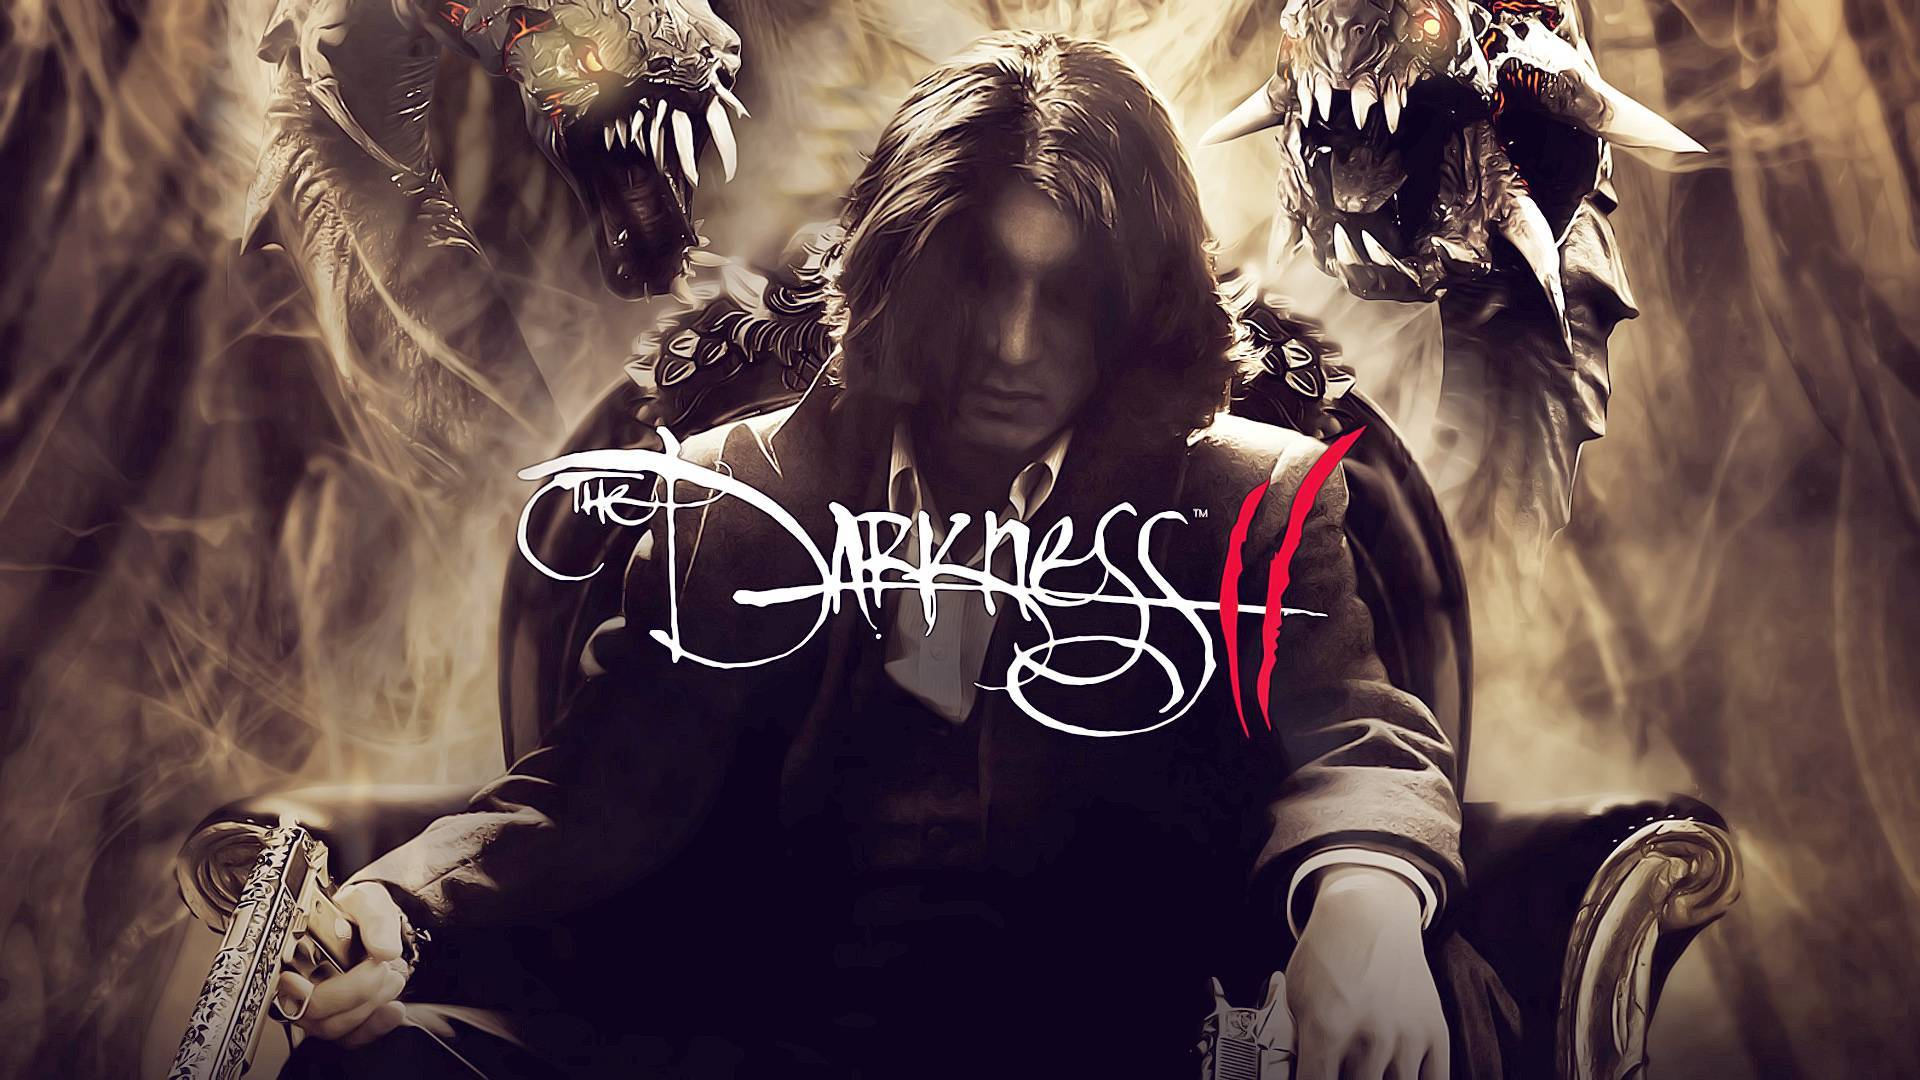 the darkness 2 wallpapers in hd